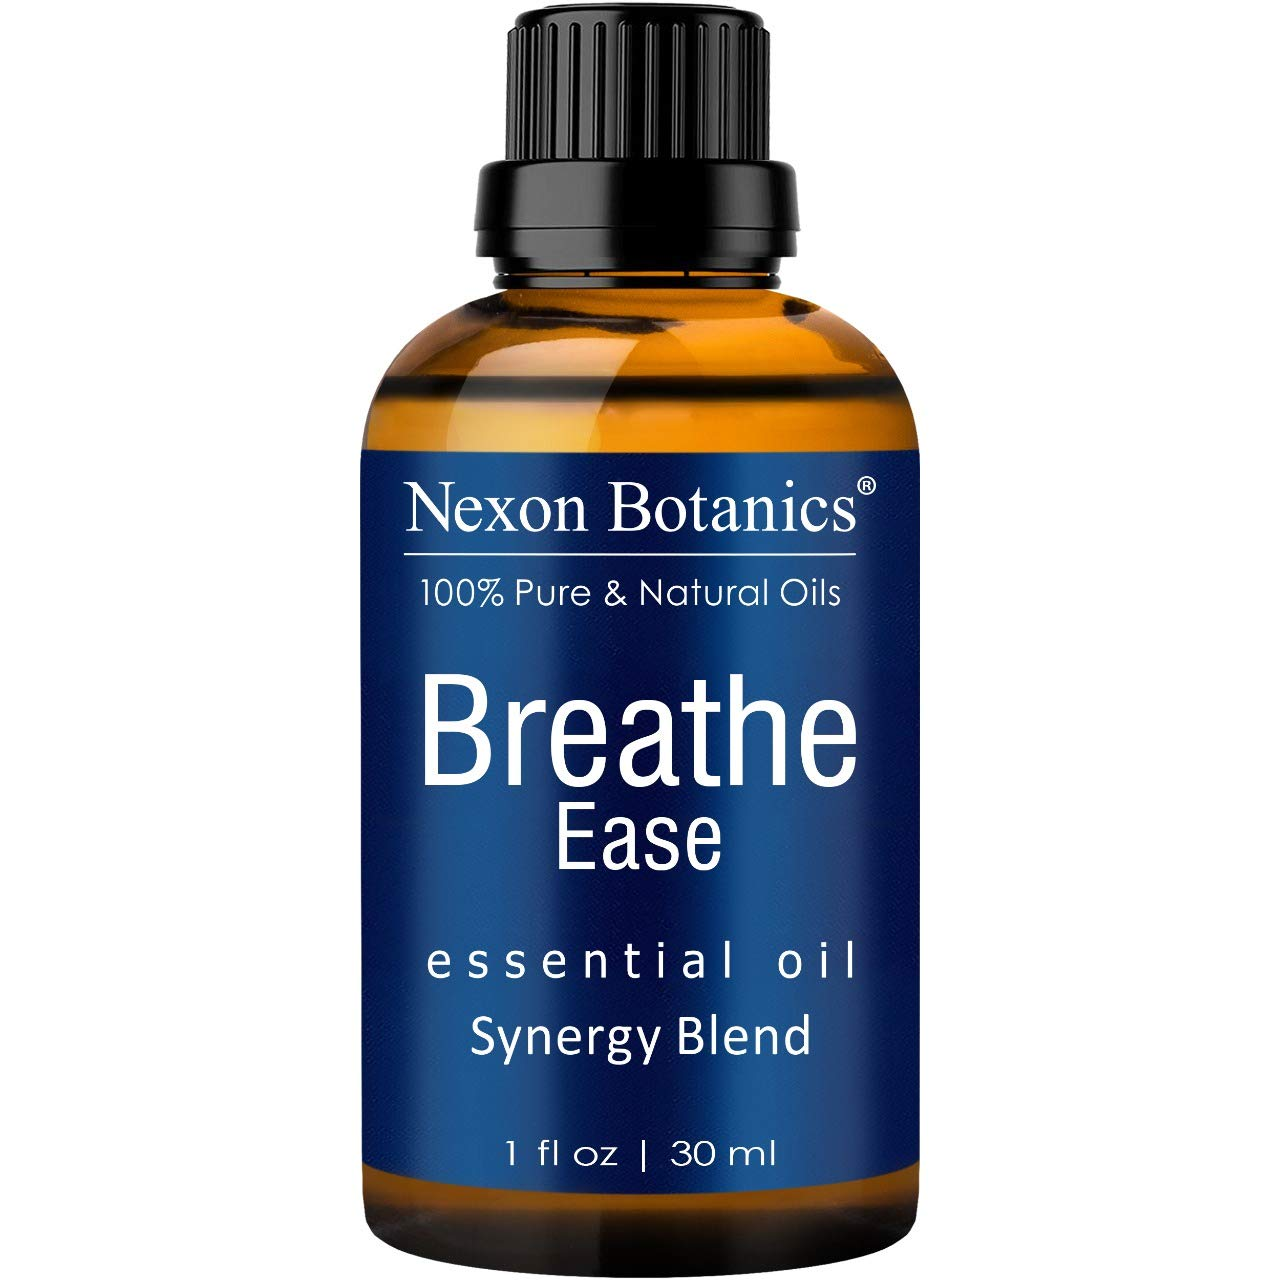 Nexon Botanics Breathe Essential Oil Blend 30 ml - Pure, Natural Breathe Easy from Eucalyptus, Peppermint, Rosemary and Niaouli - Helps Relief Sinus, Colds, Flu, Cough and Congestion